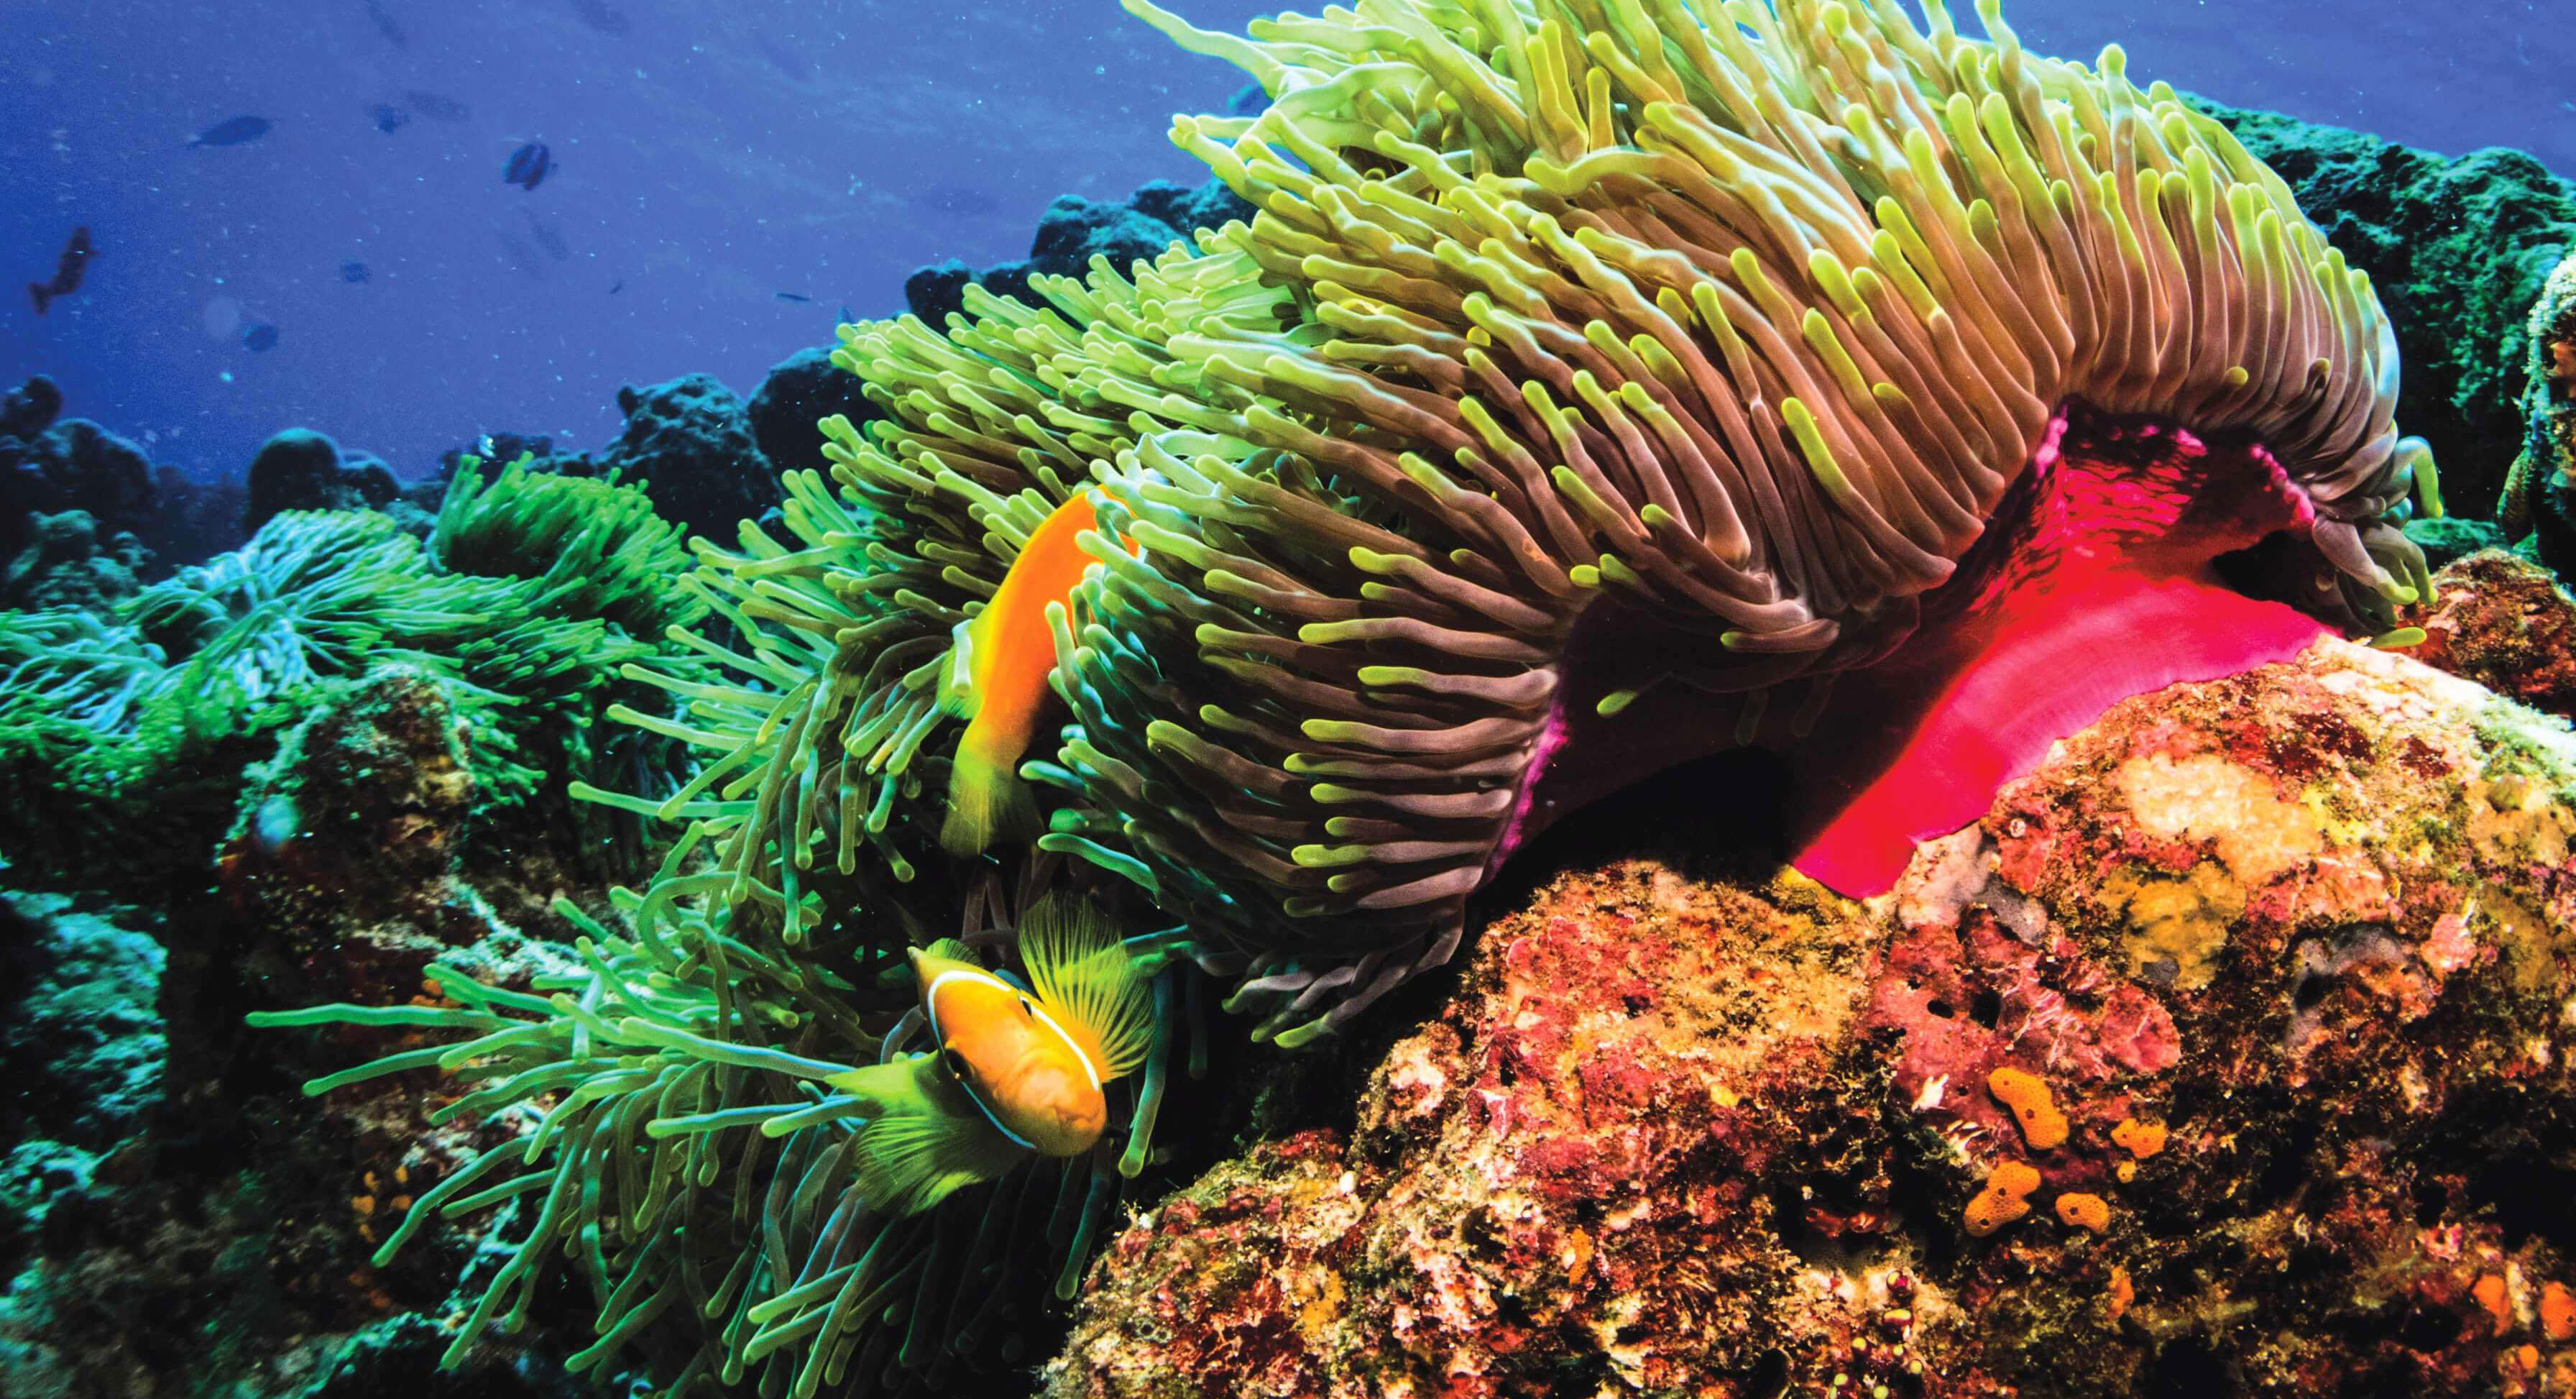 House coral